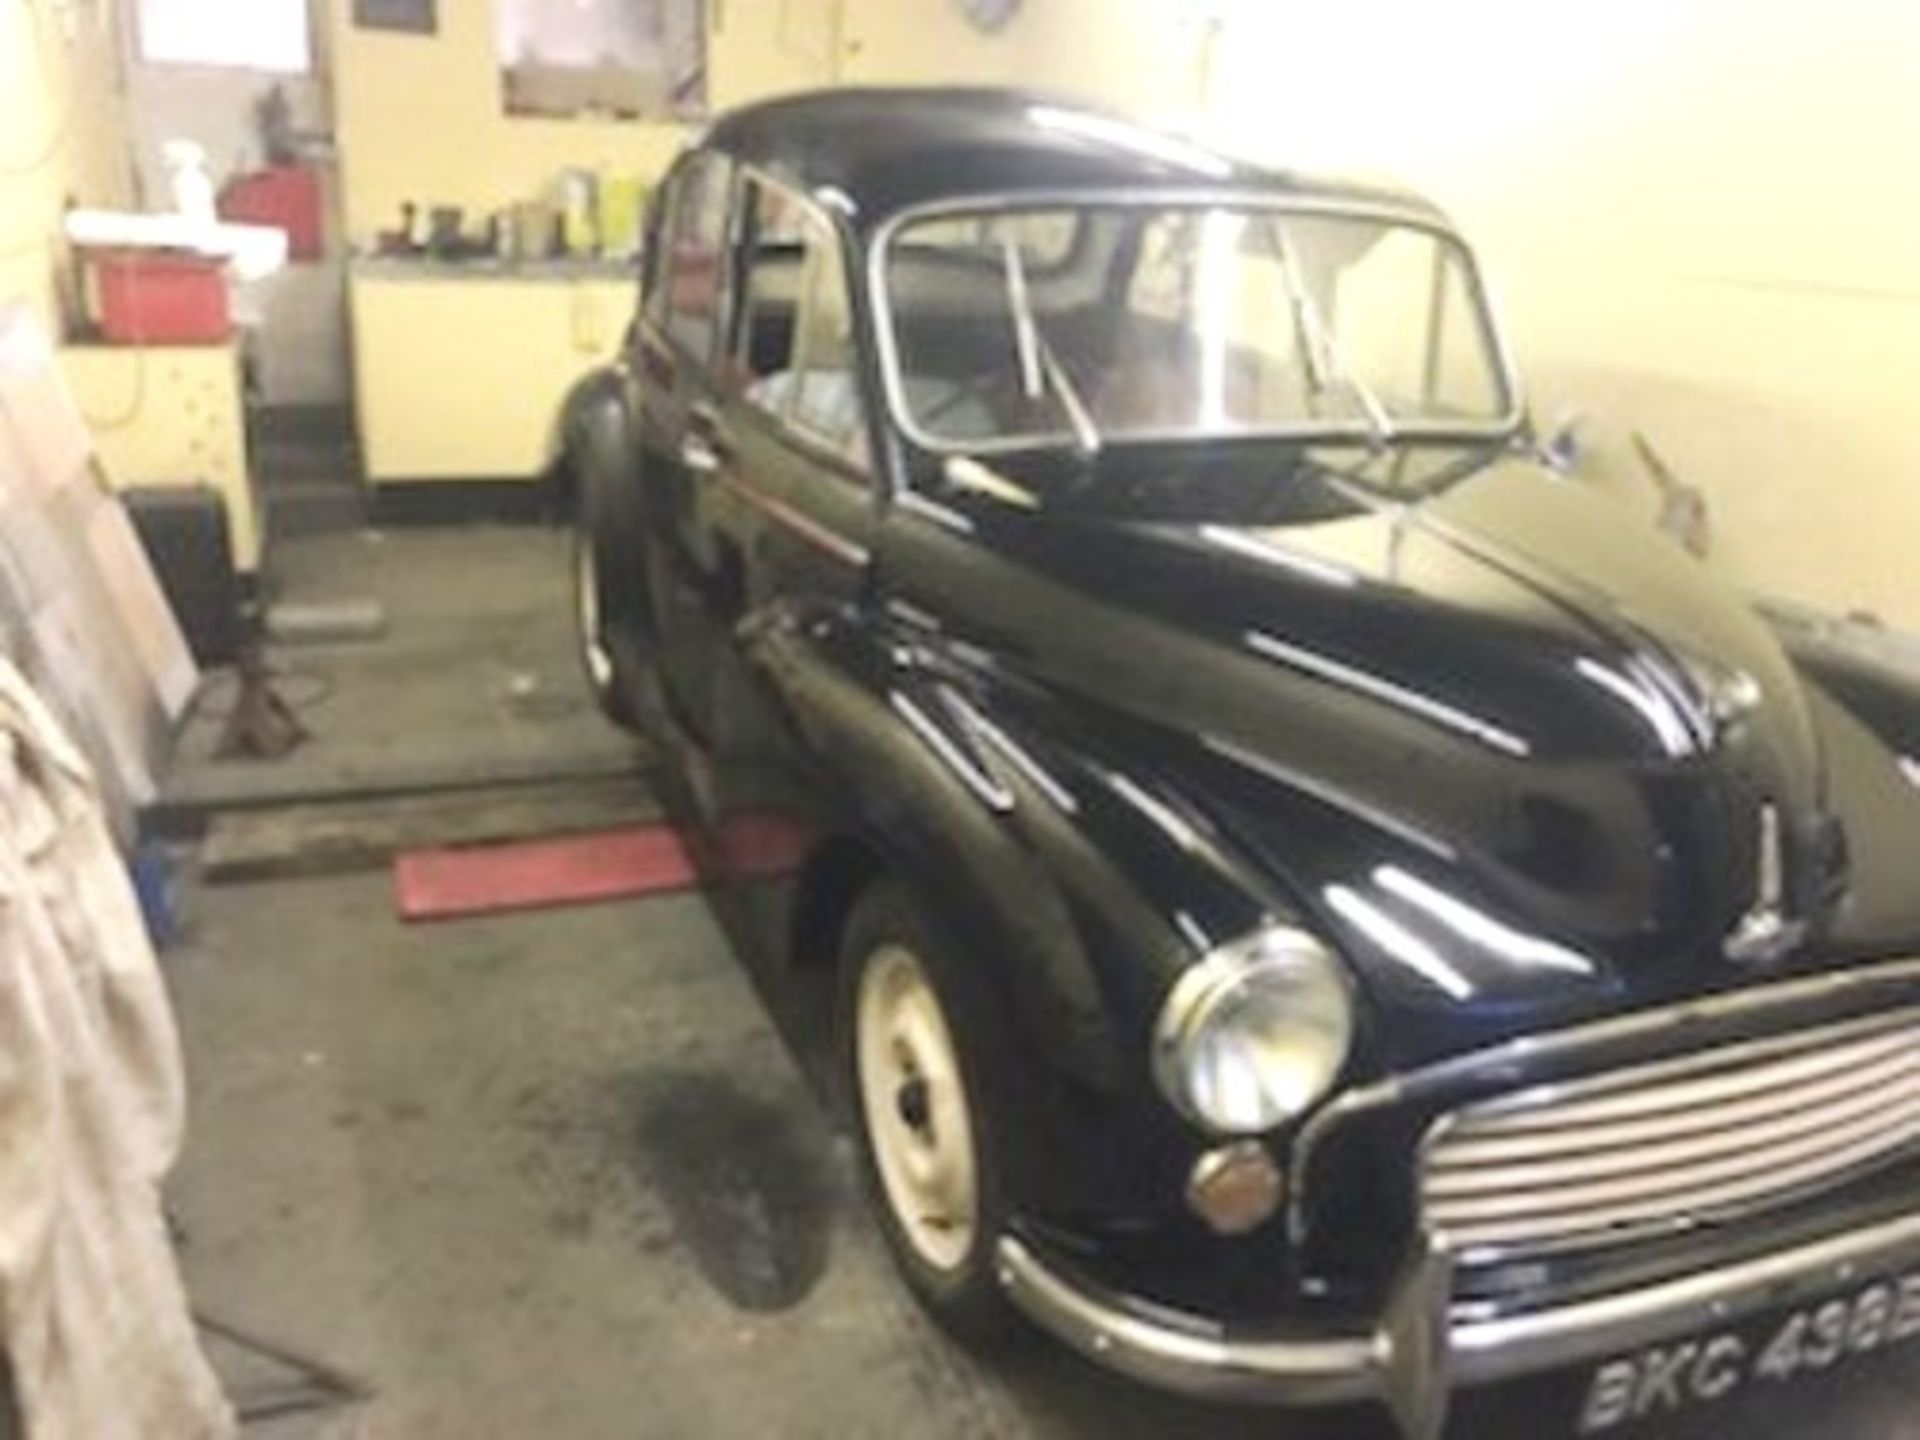 1964 Morris Minor 1000 in original black. The car has been restored with new flooring and vinyl